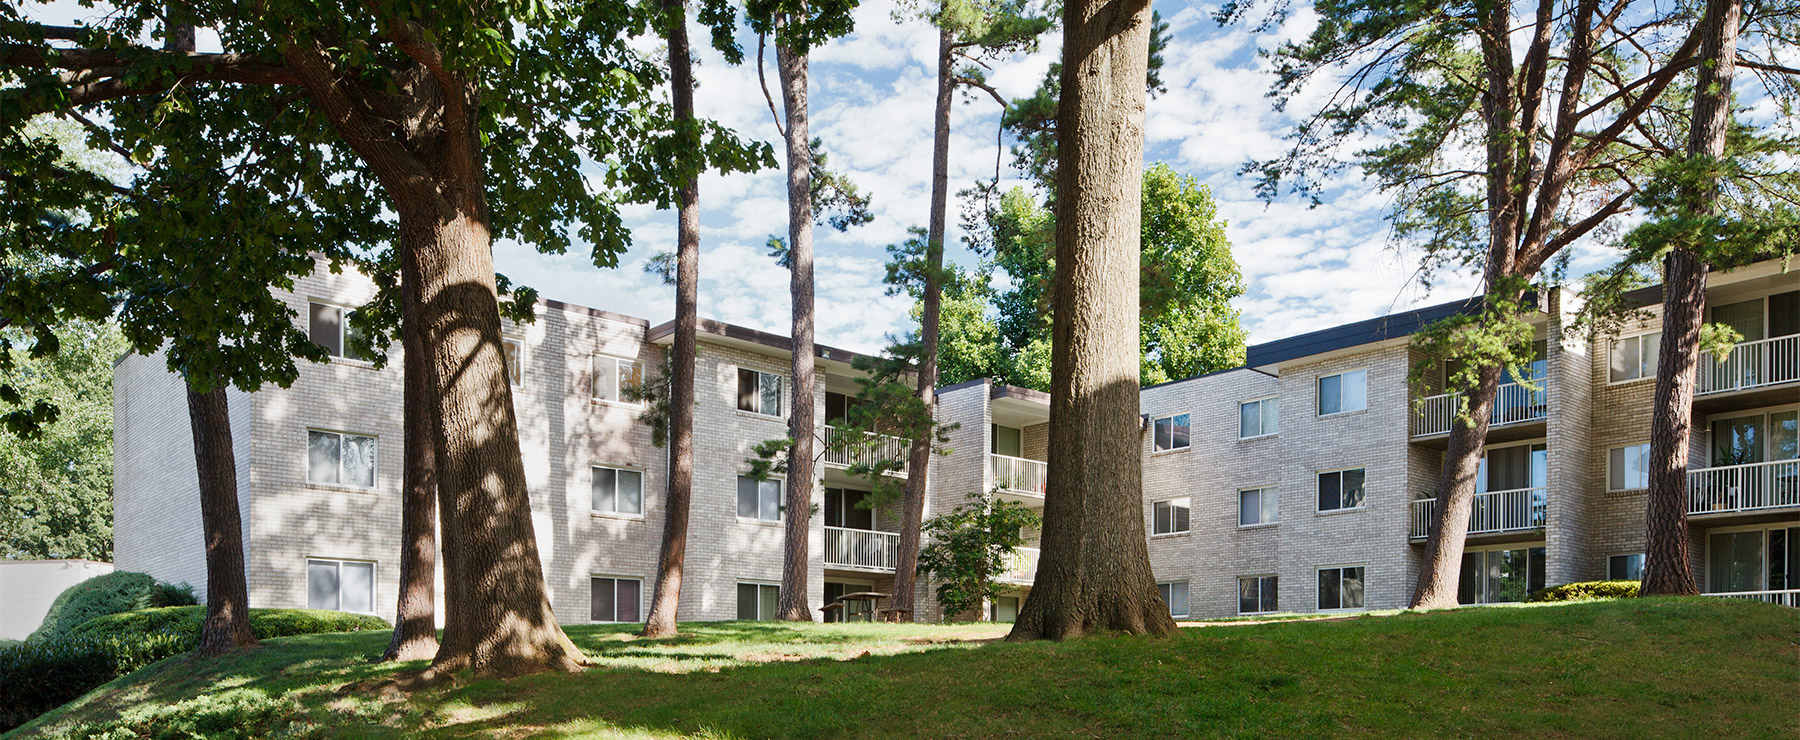 Apartments In Rockville Maryland Lerner Oxford Square - Apartments in rockville md near metro